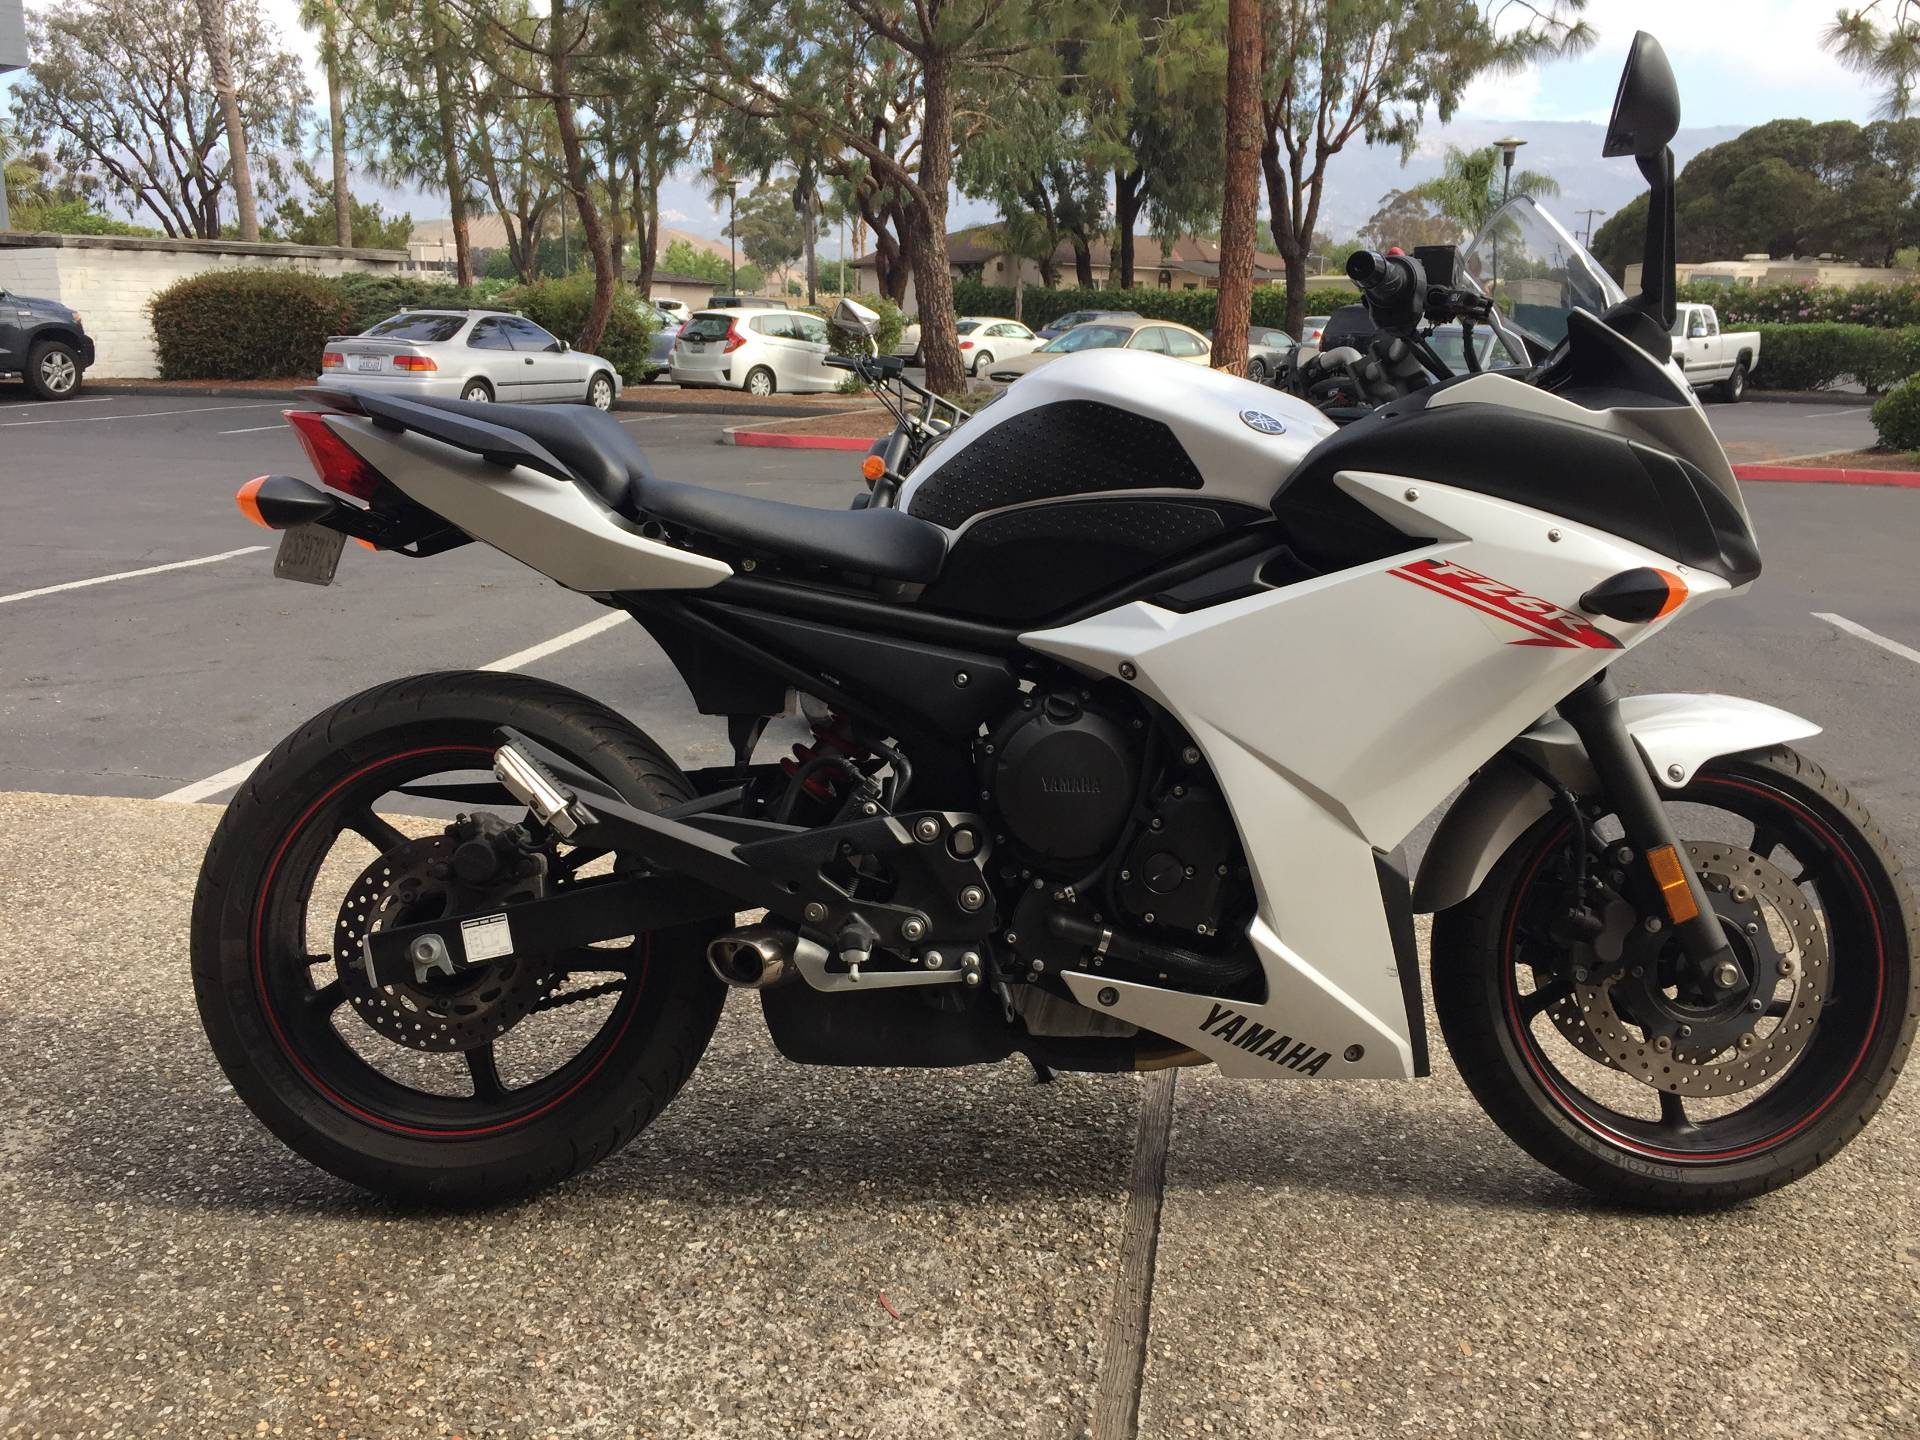 Used 2012 Yamaha FZ6R | Motorcycles in Goleta CA | N/A Pearl White